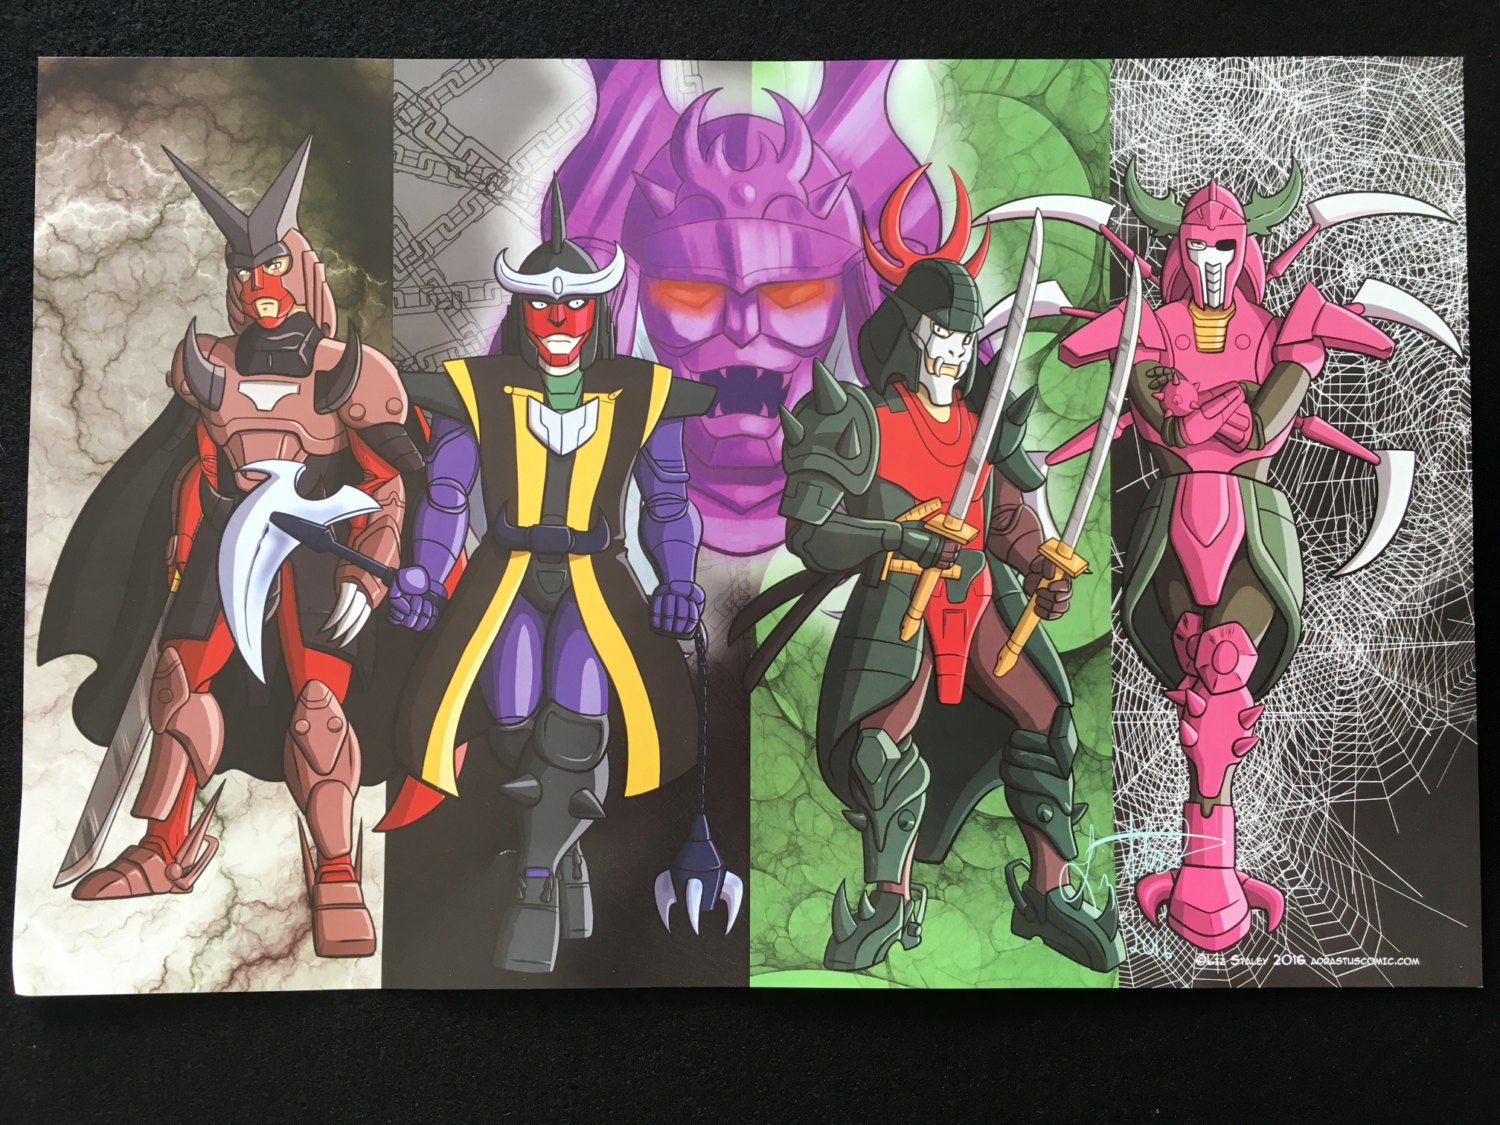 Dark warlords ronin warriors samurai poster 11x17 inches - Ronin warriors warlords ...